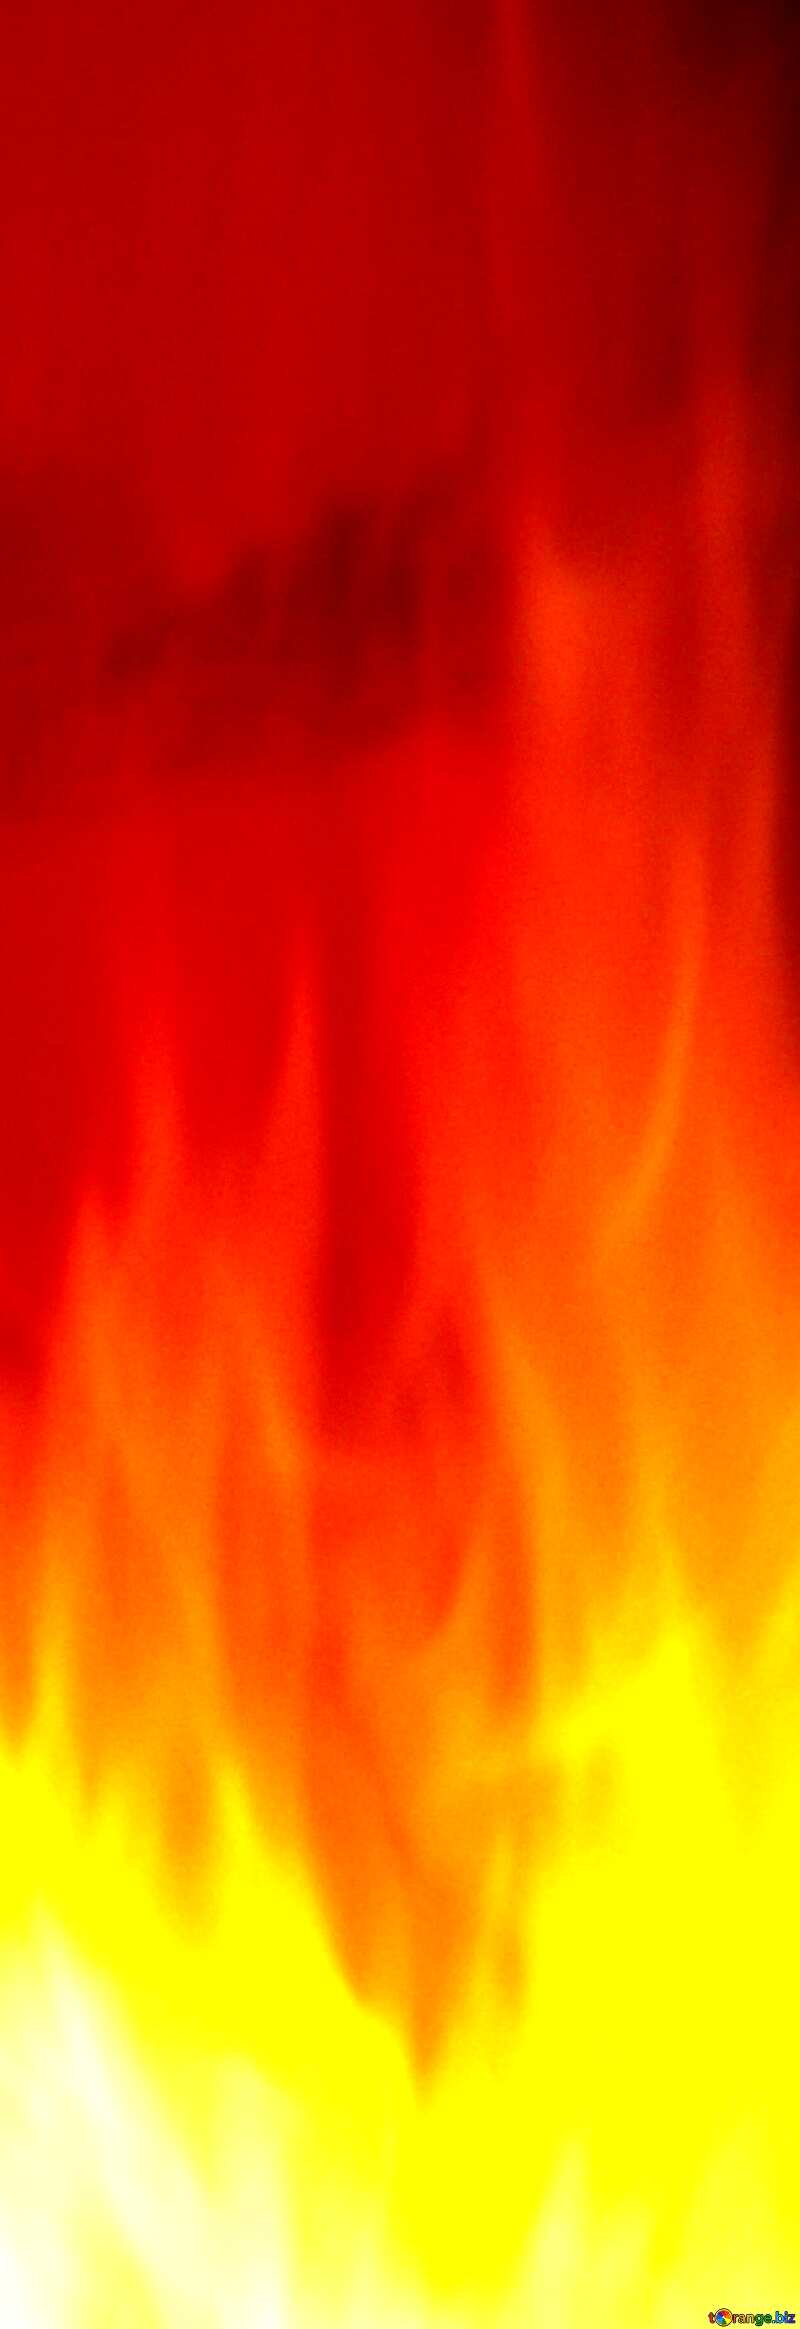 Fire banner background №9546